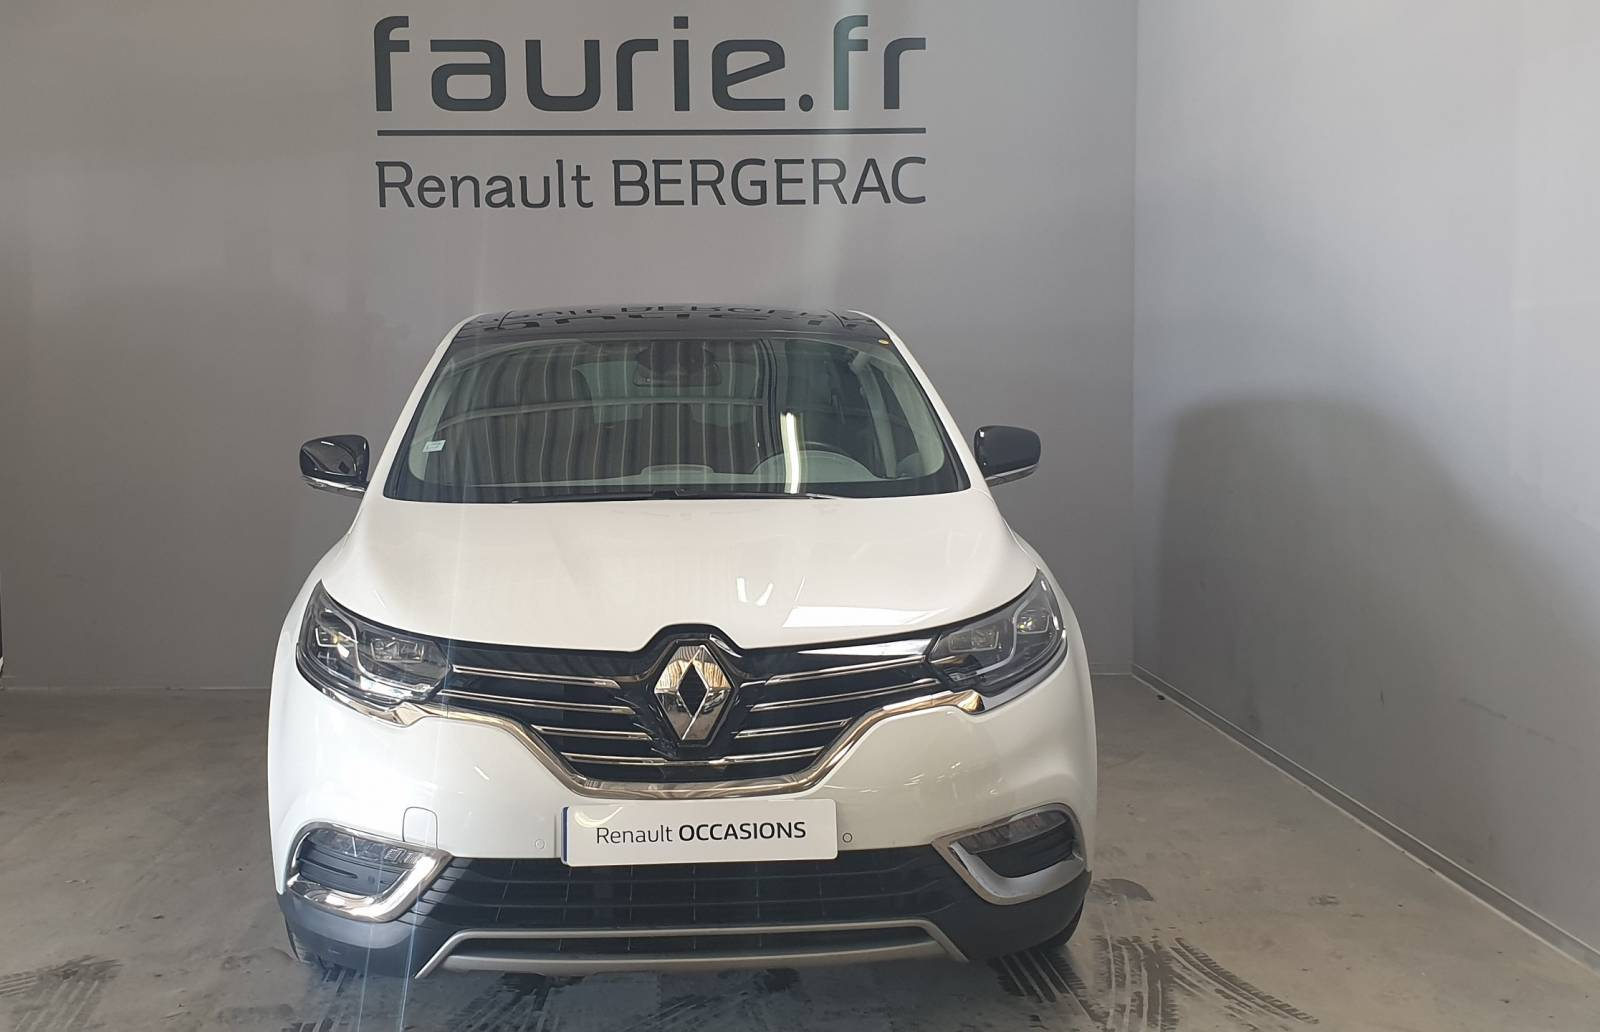 RENAULT Espace dCi 160 Energy Twin Turbo - véhicule d'occasion - Site Internet Faurie - Renault - Faurie Auto Bergerac - 24100 - Bergerac - 2